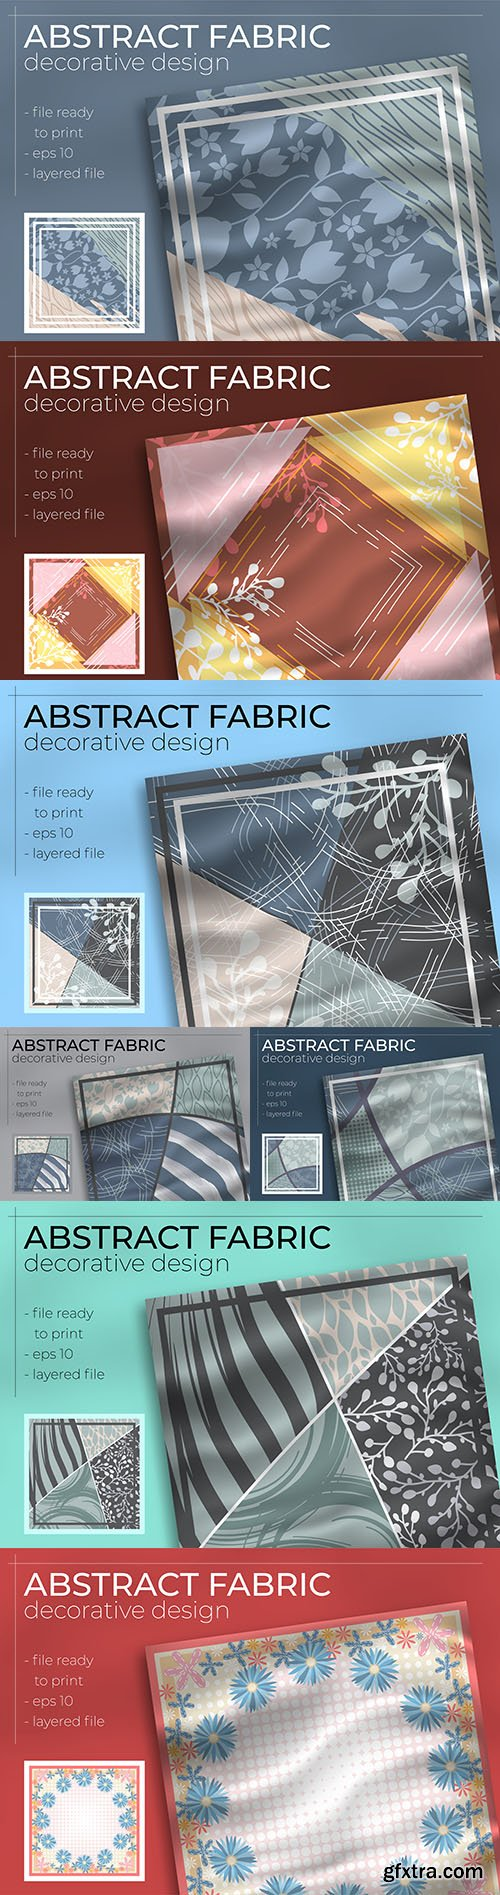 Decorative abstract realistic fabric design